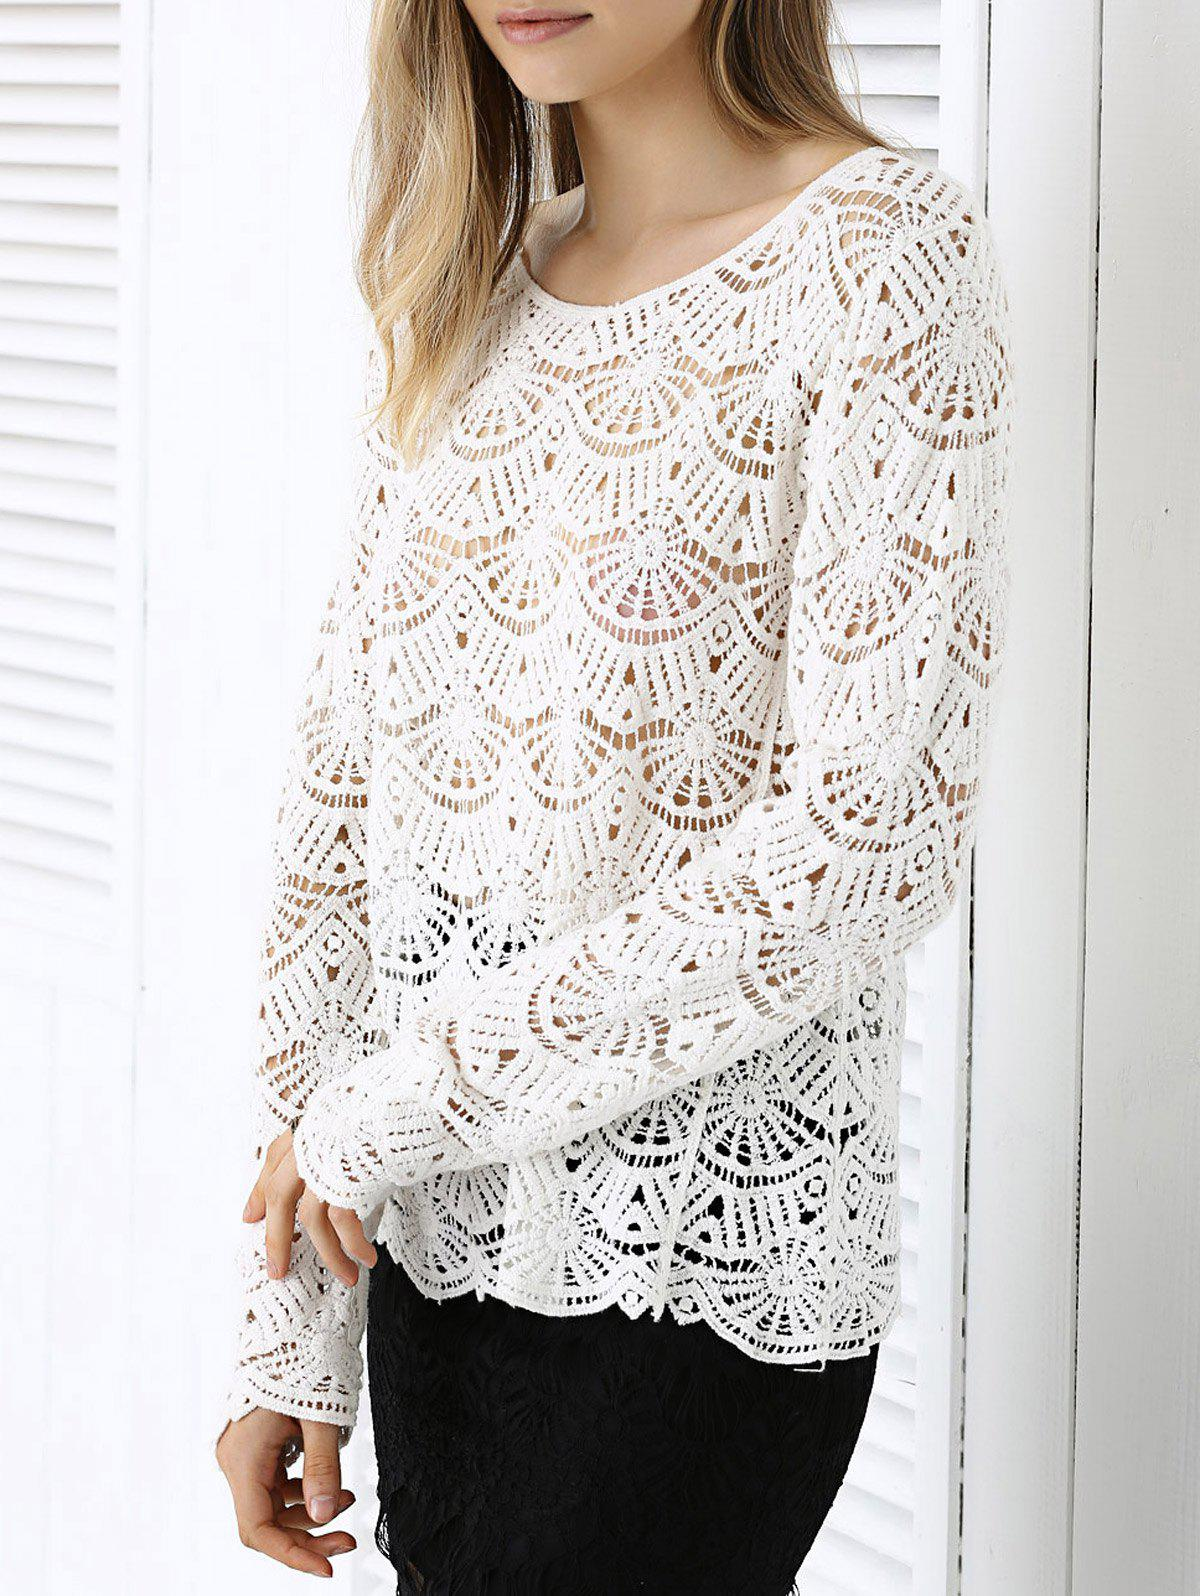 Chic Fanshaped Lace Crochet Trim See-Through Spliced Blouse - WHITE ONE SIZE